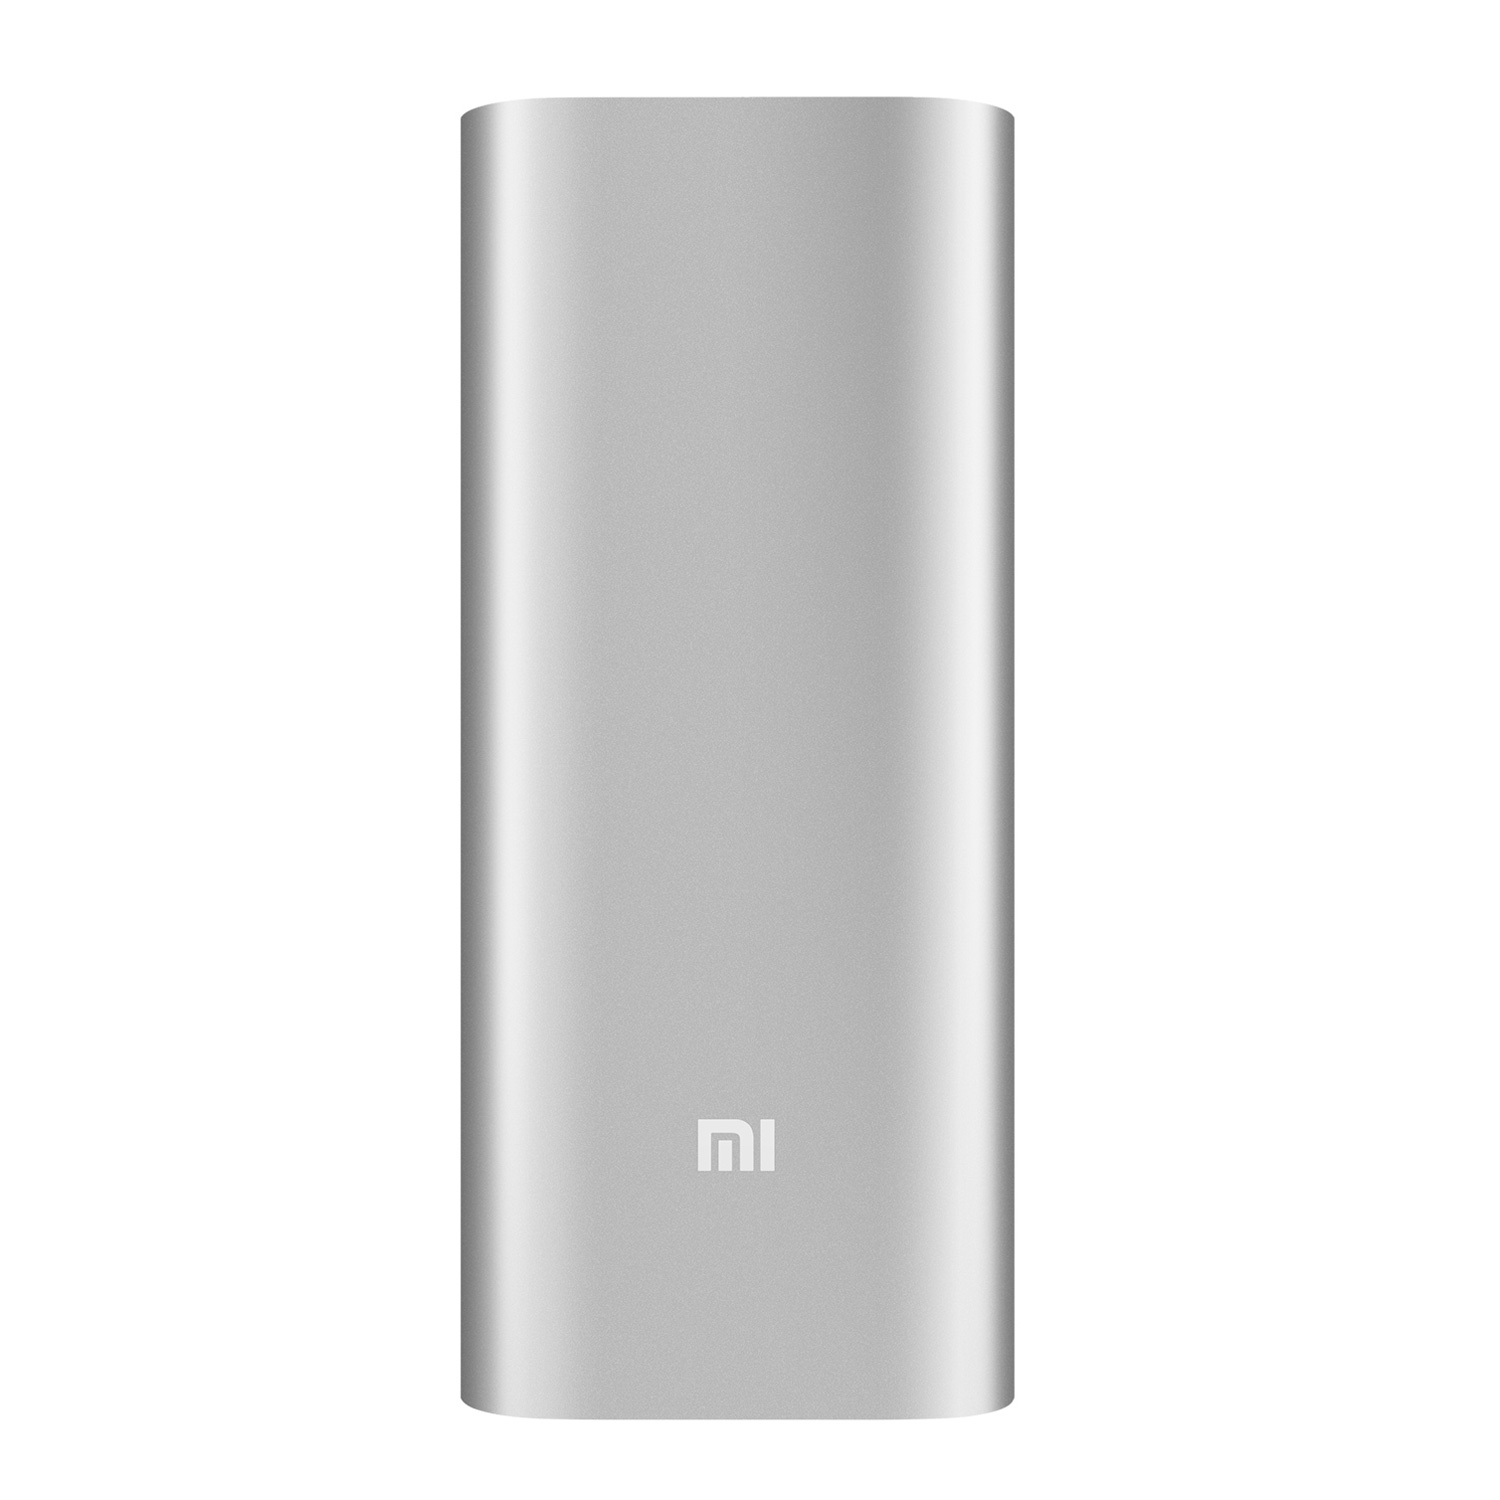 Original XIAOMI Power Bank 5V 2.1A 16000mAh Dual USB for Smartphone Tablet Notebook